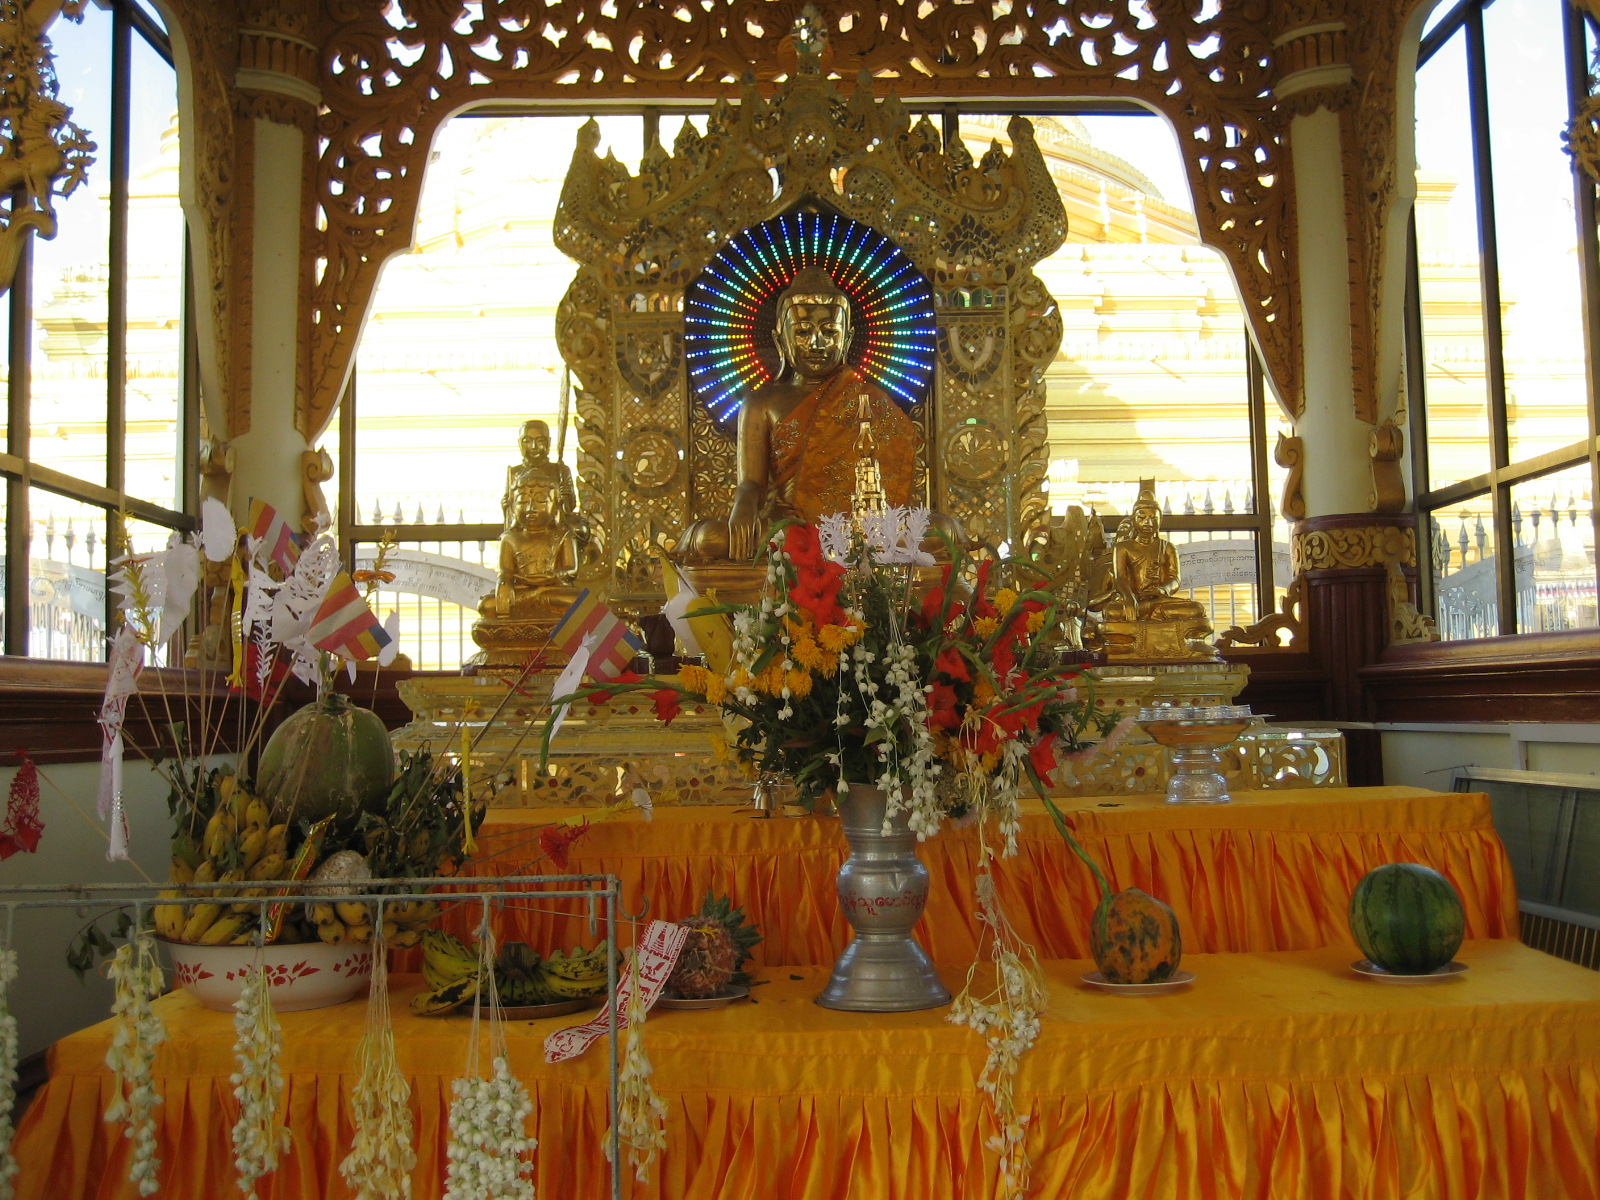 FileKuthodaw Main ShrineJPG